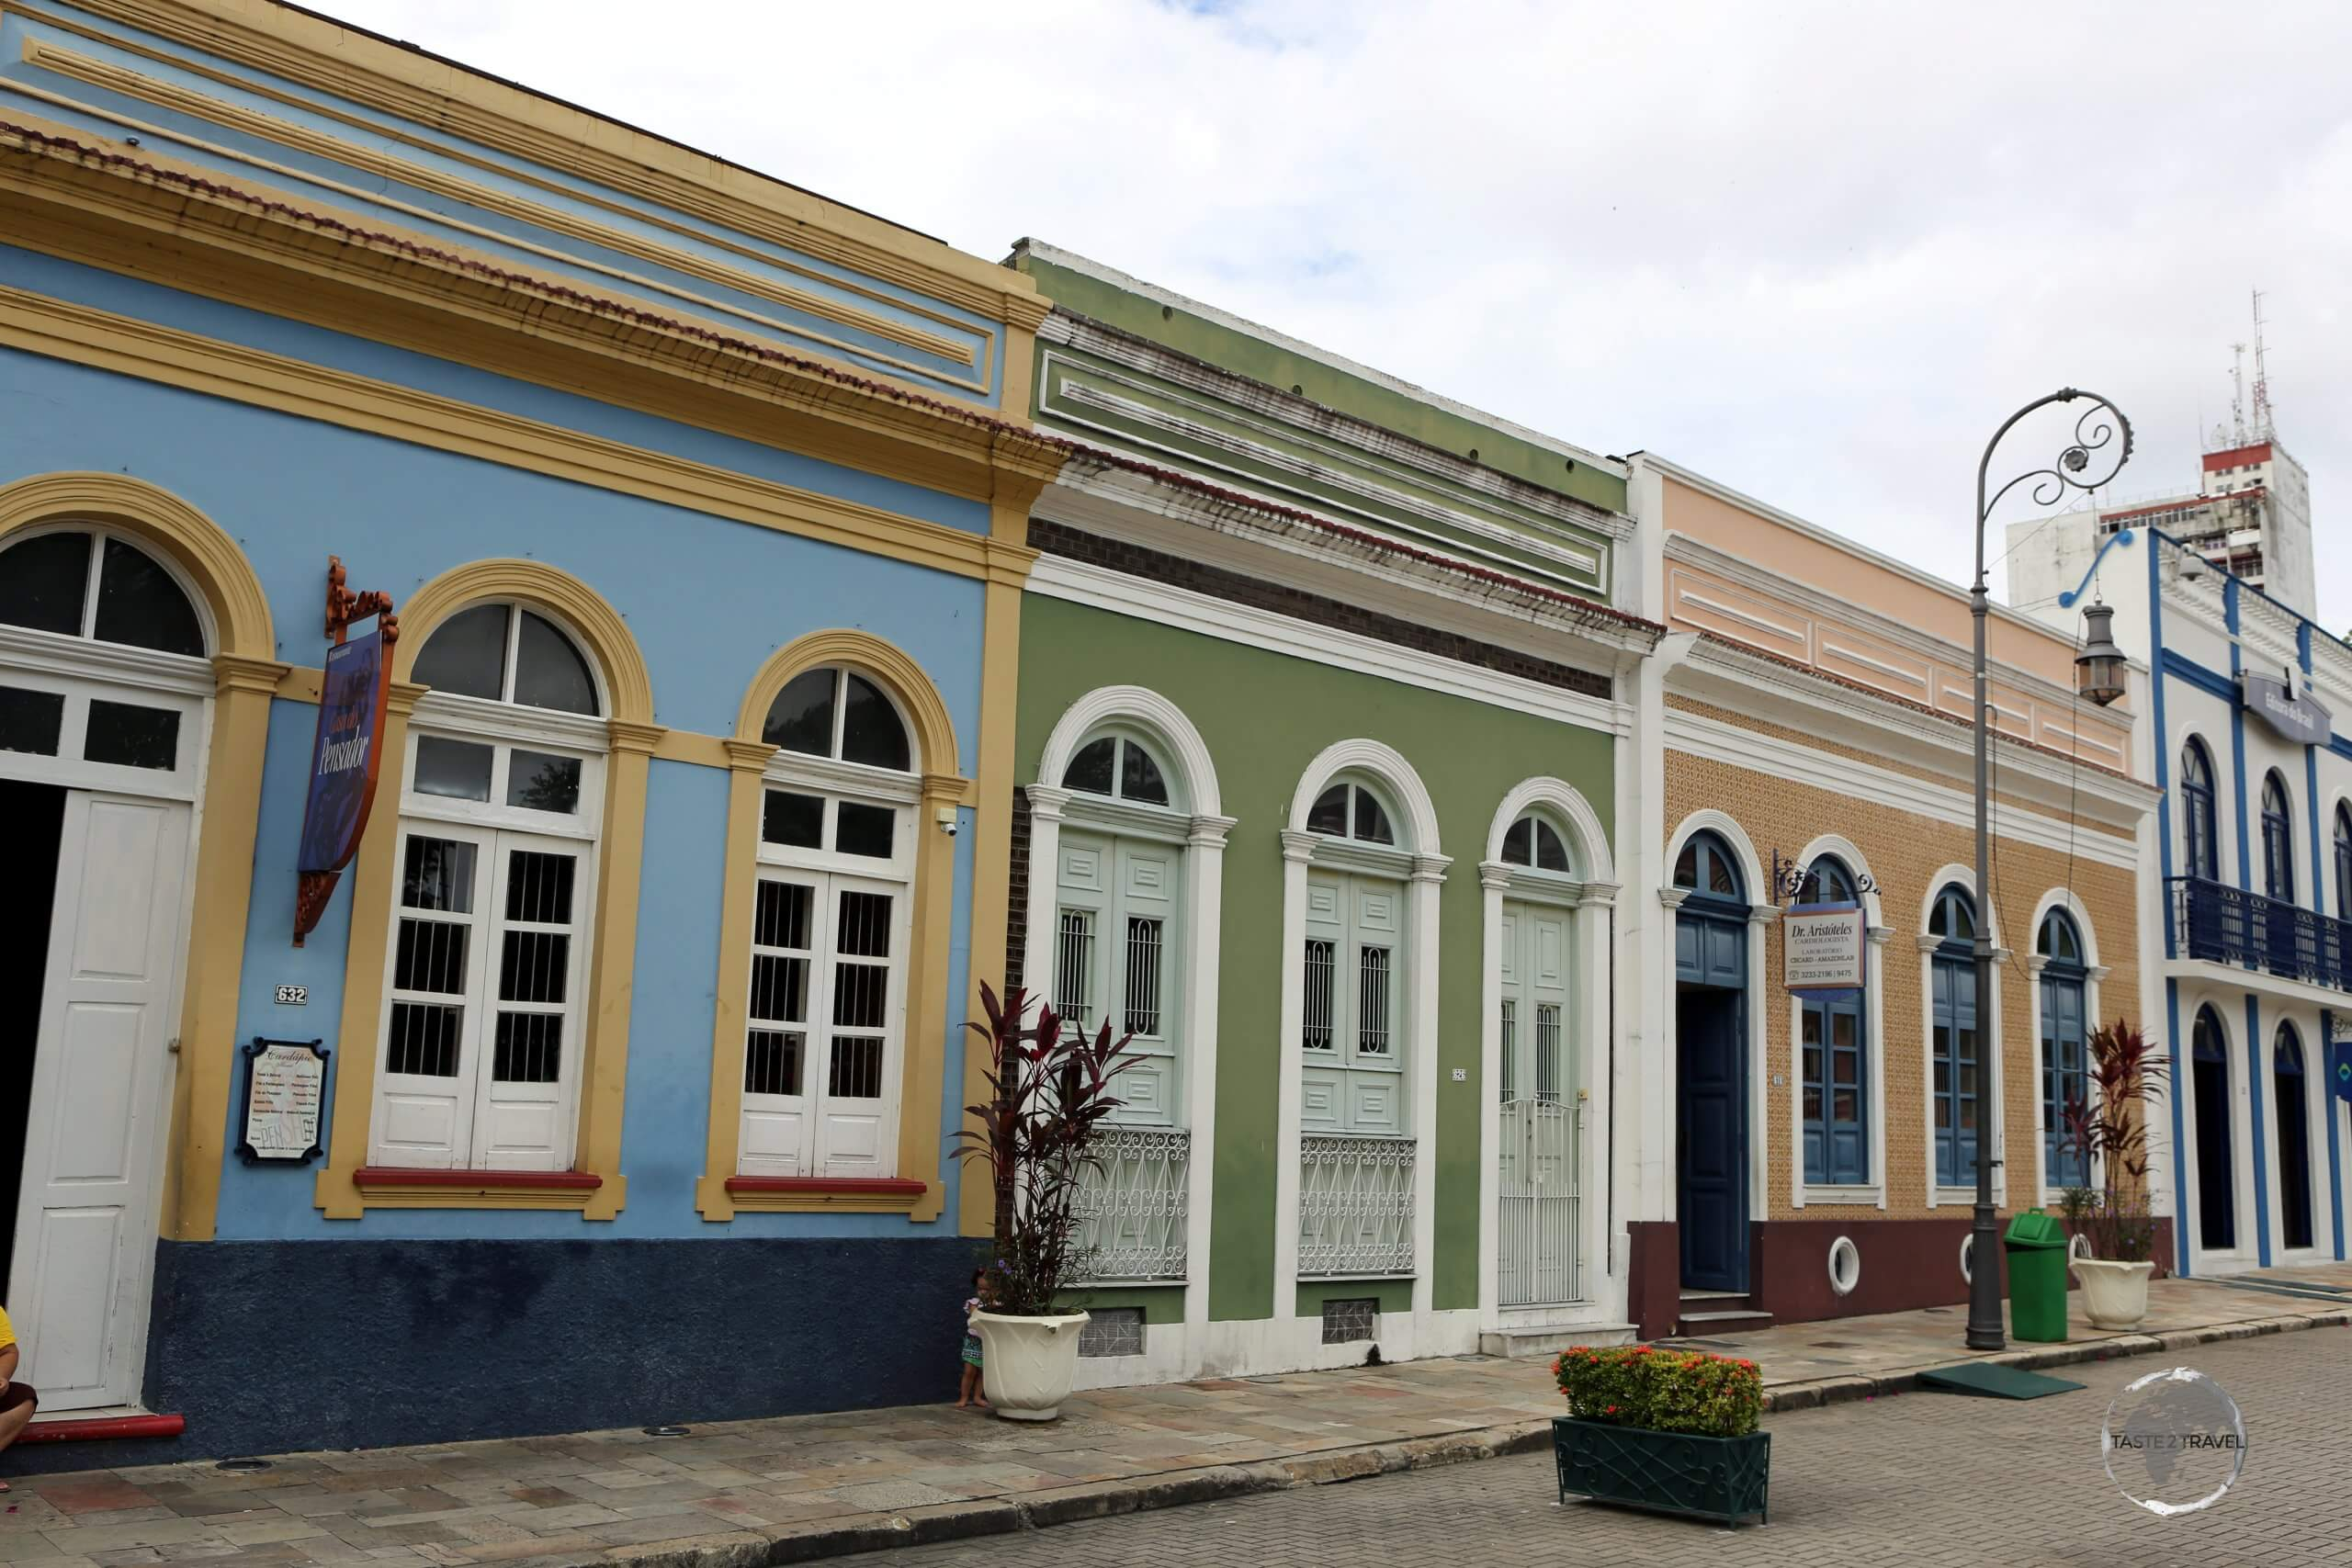 Colourful houses in Manaus, the capital of Amazonas state, which is situated in the heart of the Amazon Rainforest, 900 miles (1,450 km) inland from the Atlantic coast.